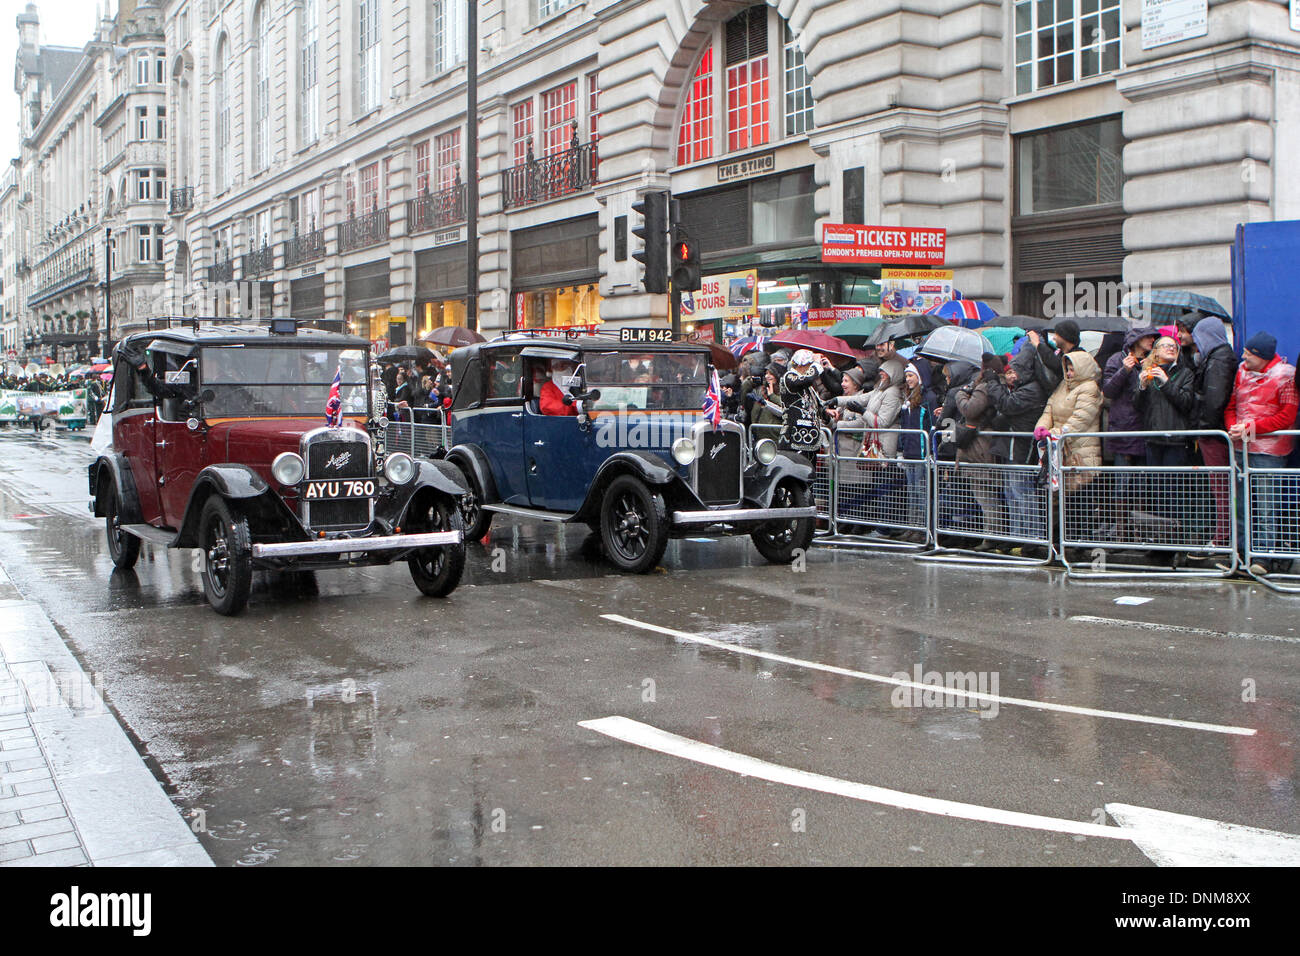 London,UK,1st January 2014,Vintage cars took part in the London's New Year's Day Parade 2014 Credit: Keith Larby/Alamy Live News - Stock Image